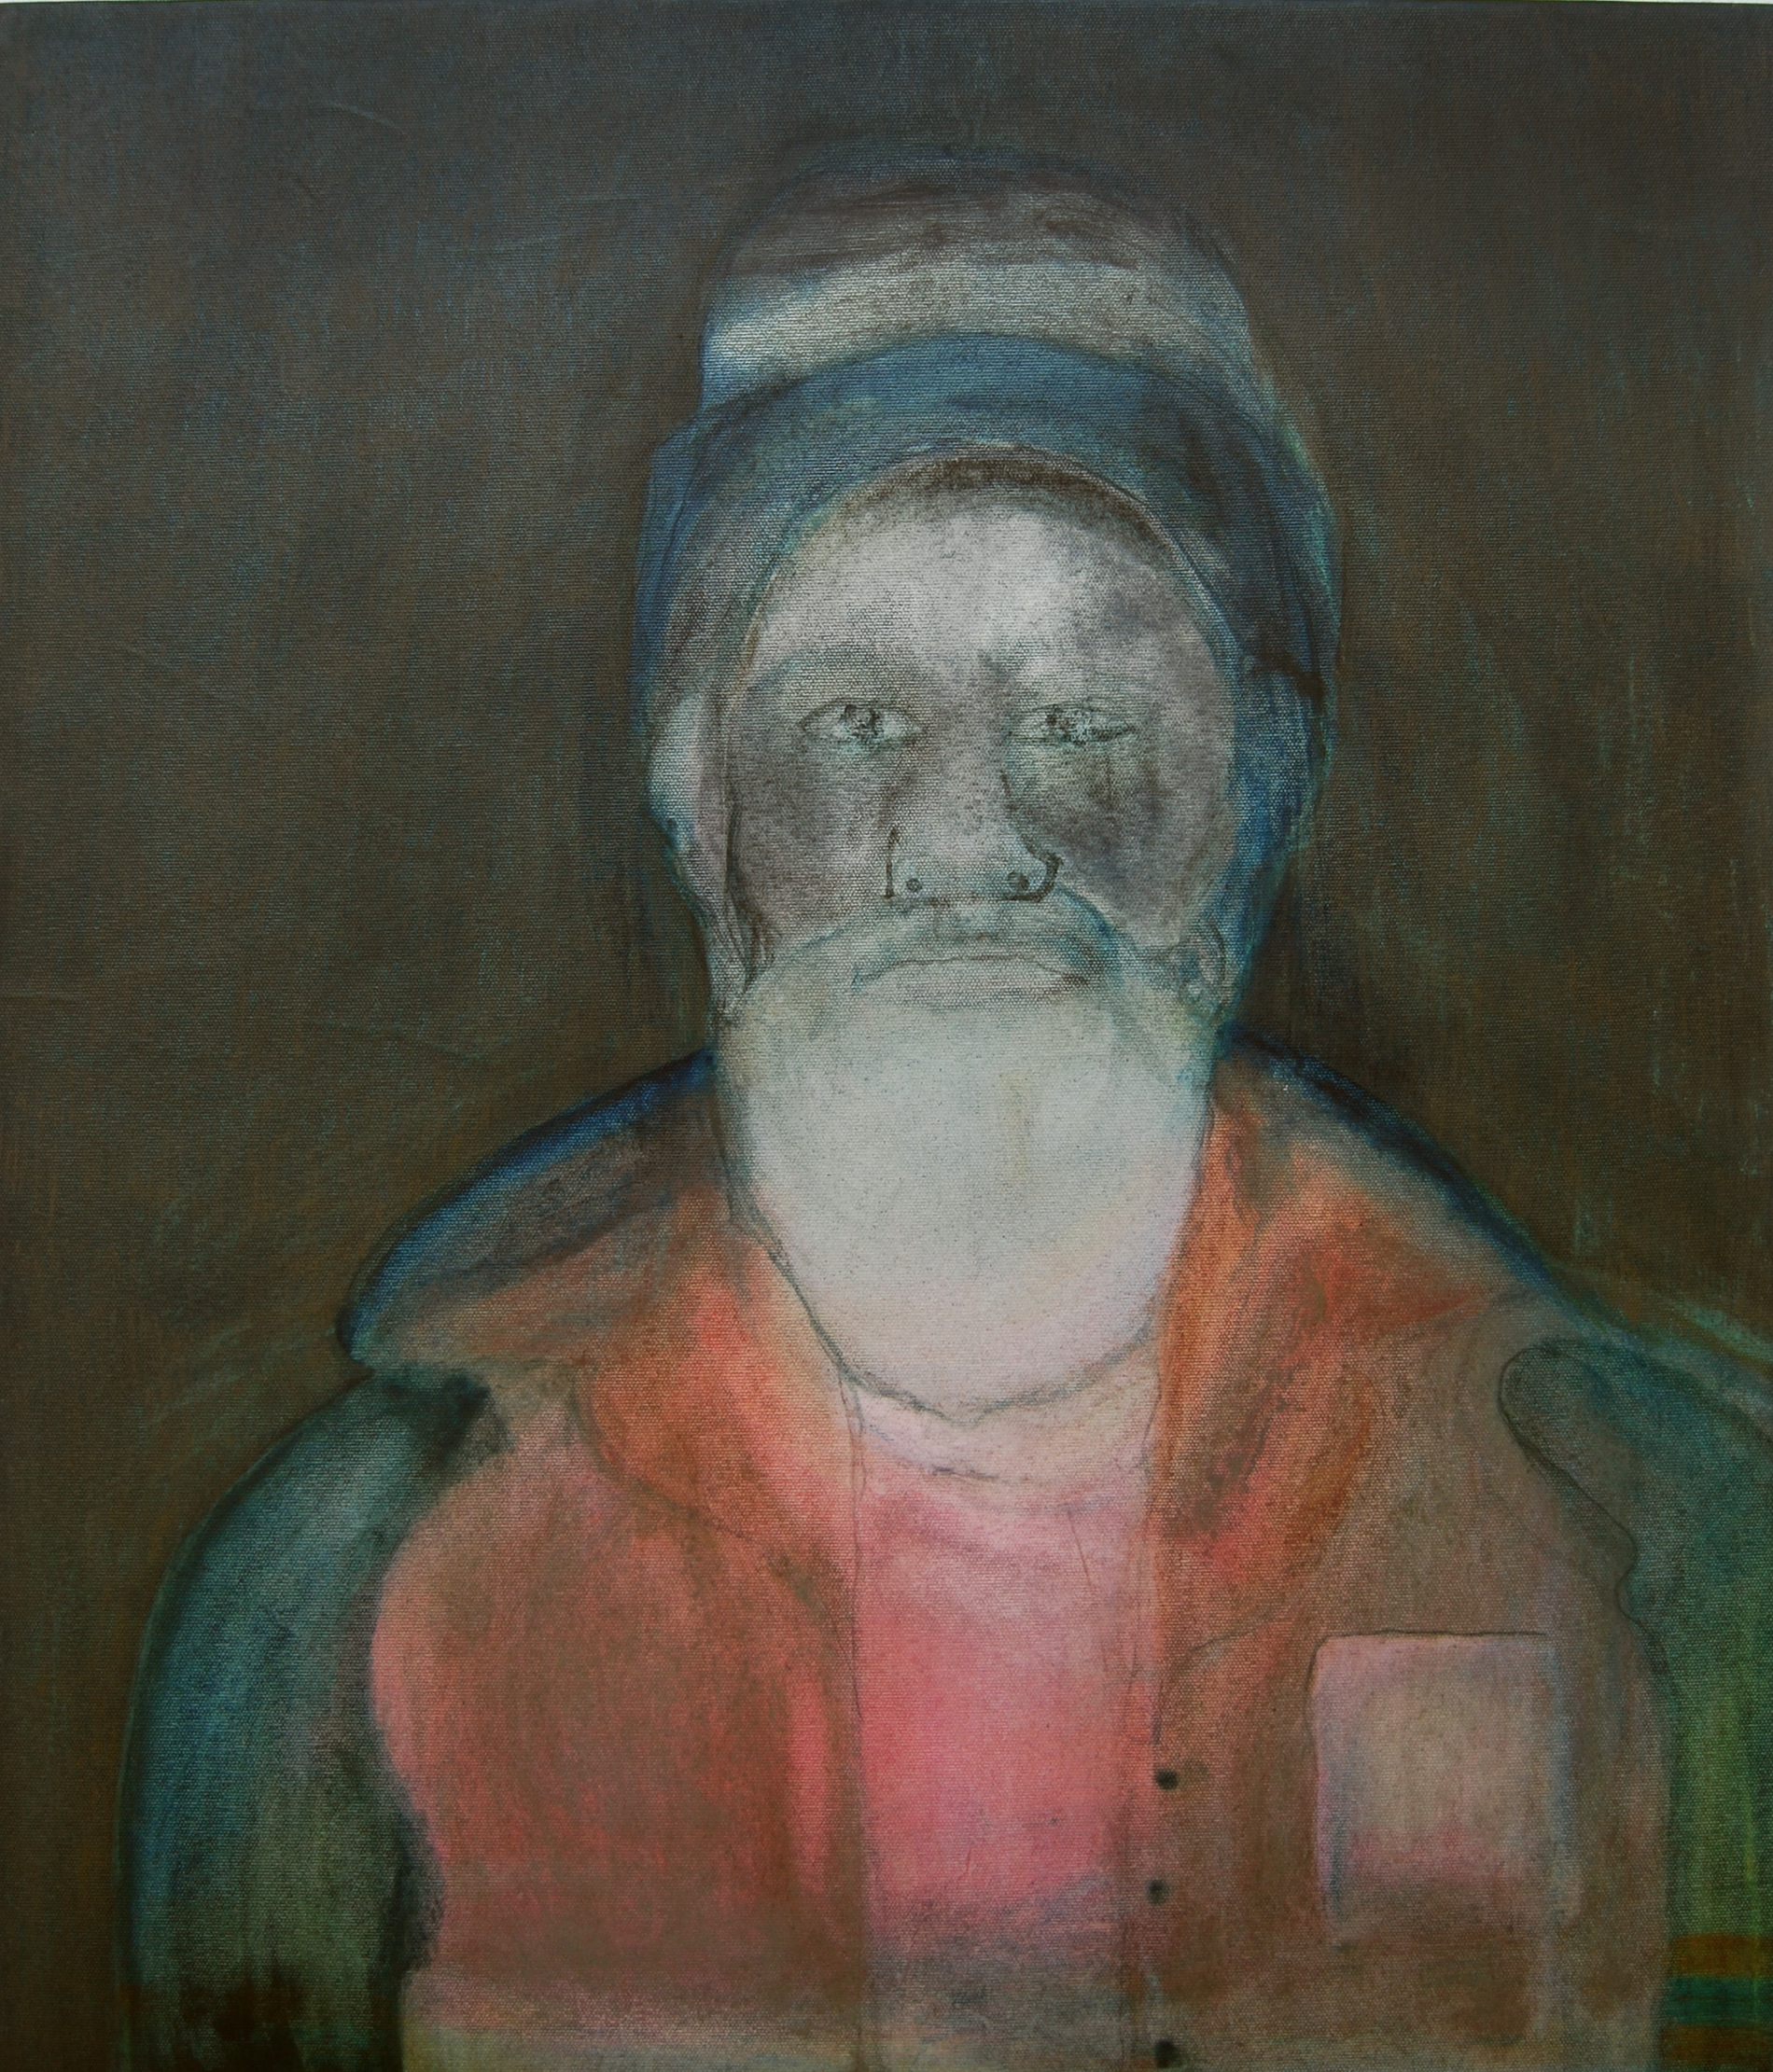 Justin Williams, Porter's Jacket , 2014, oil and raw pigment on canvas, 70 x 60cm